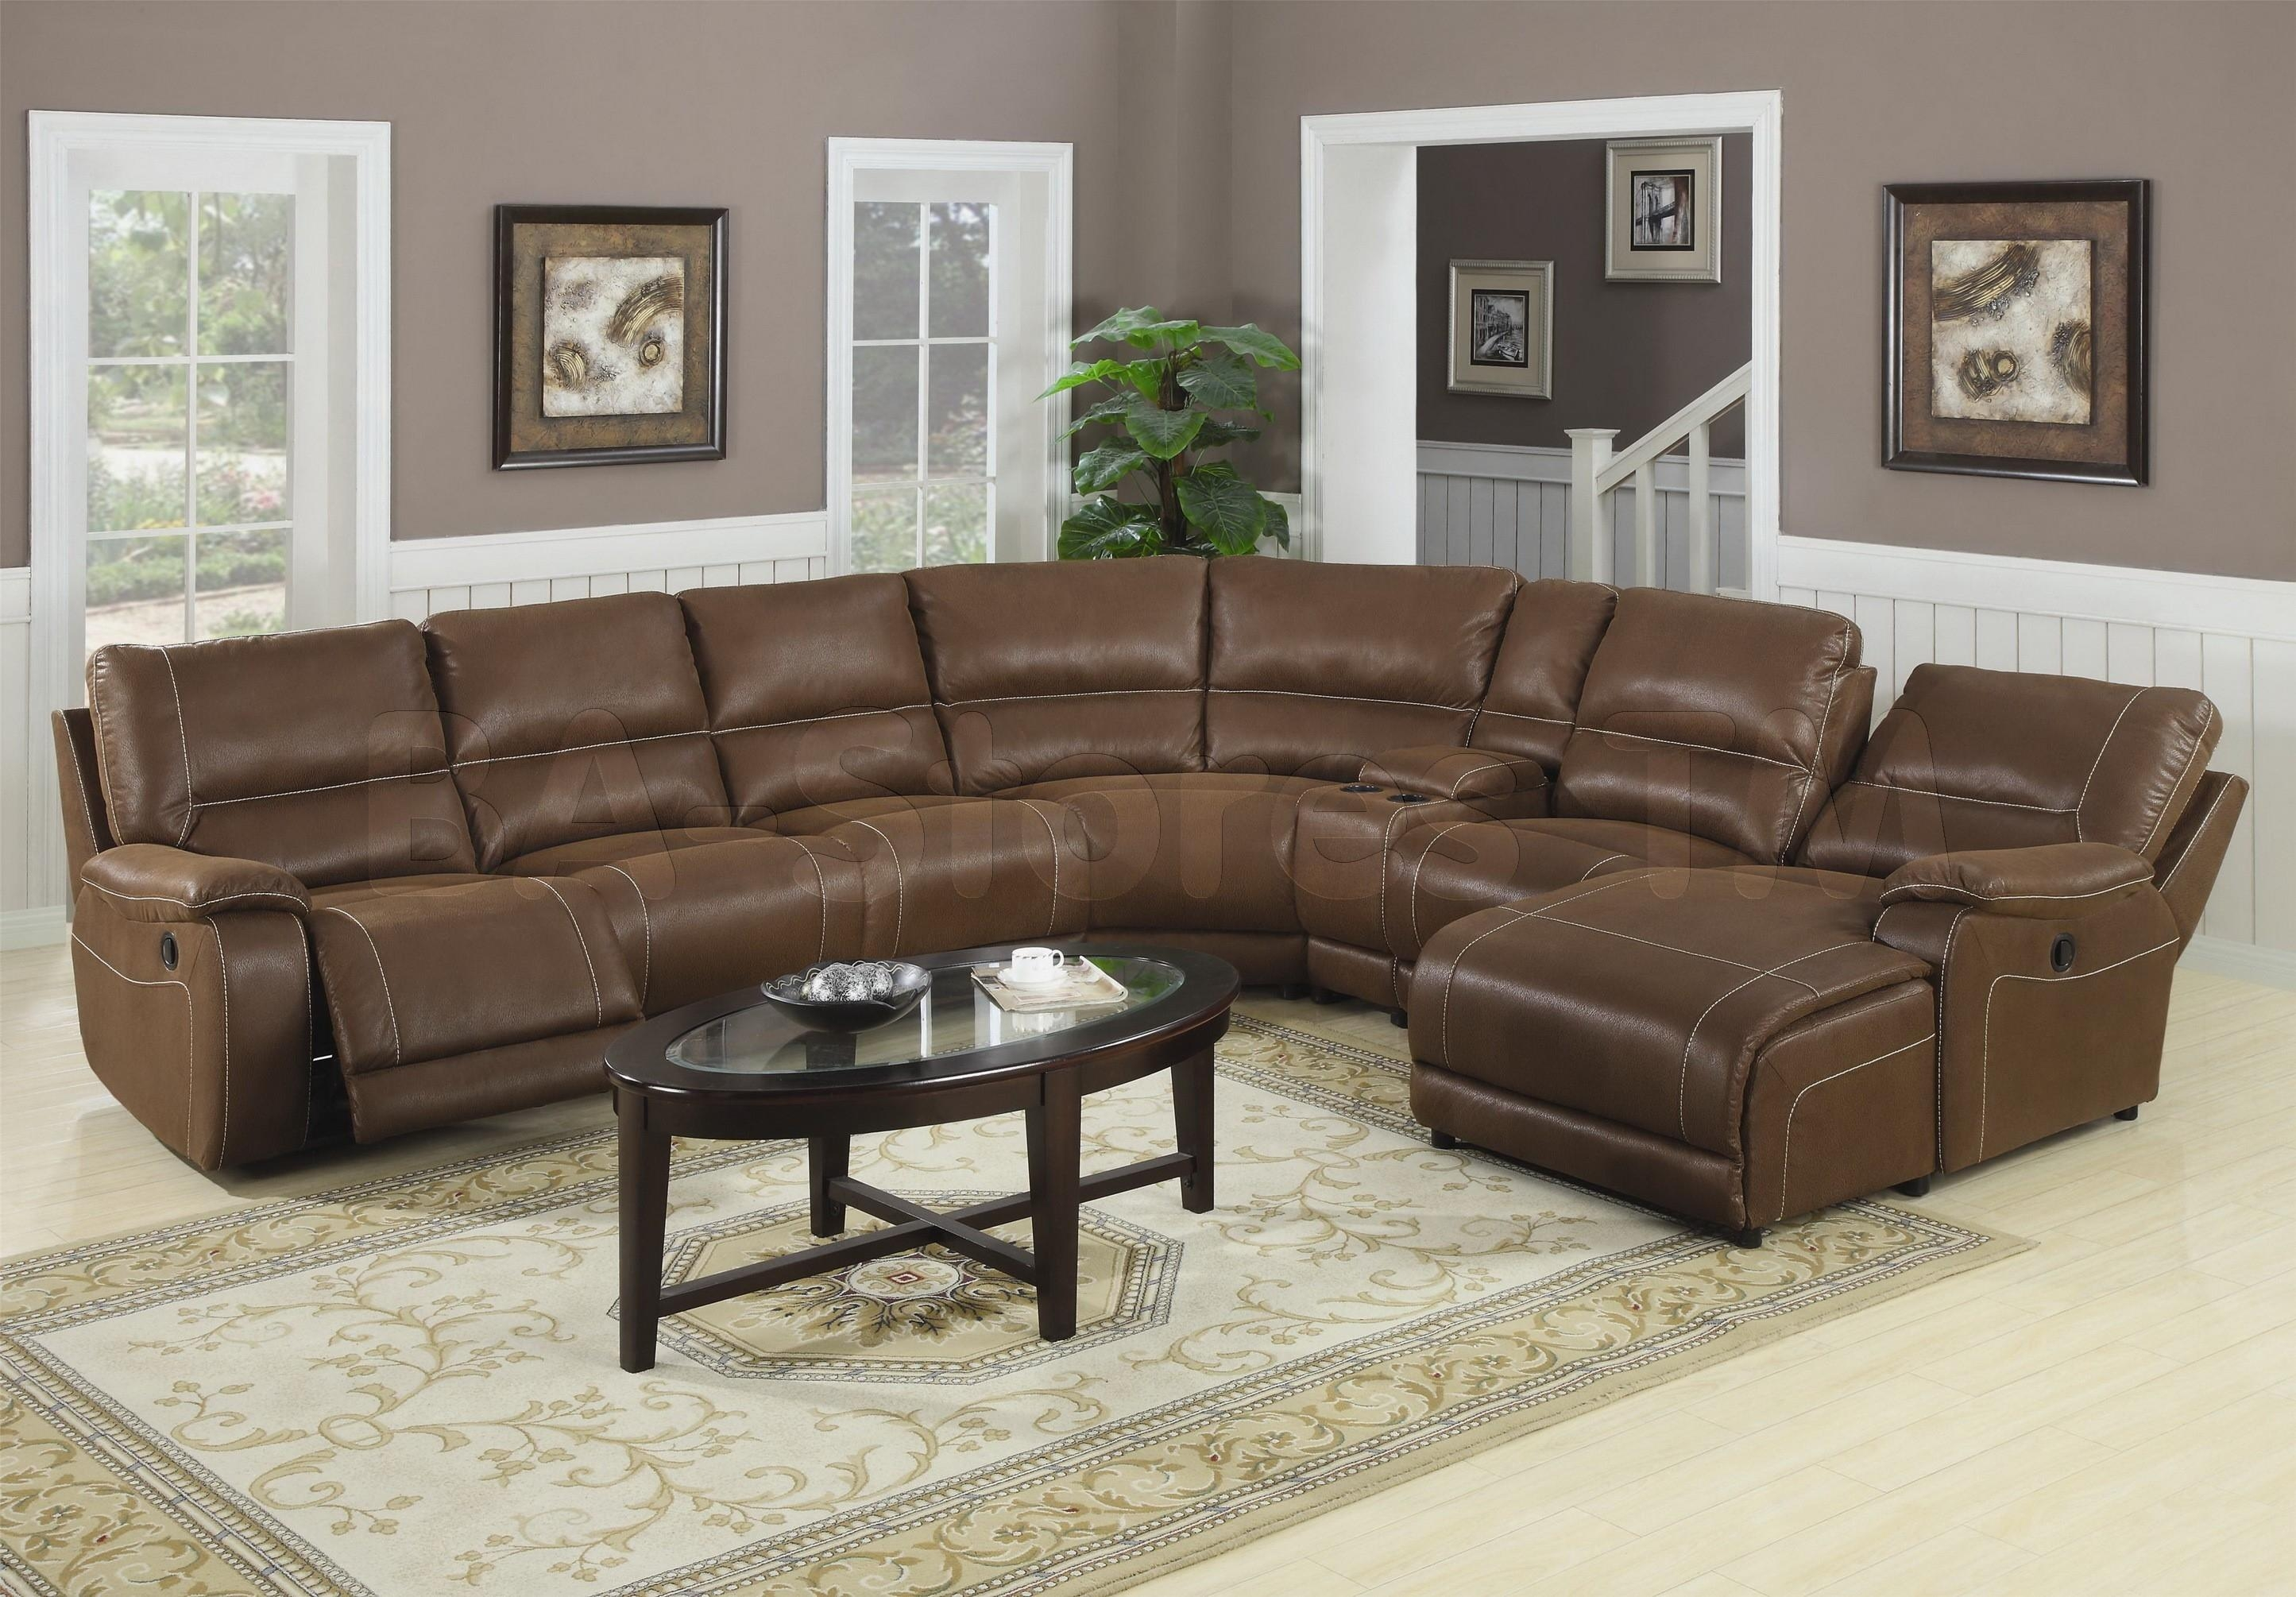 Furniture: Interesting Living Room Interior Using Large Sectional Intended For Huge Leather Sectional (View 3 of 20)